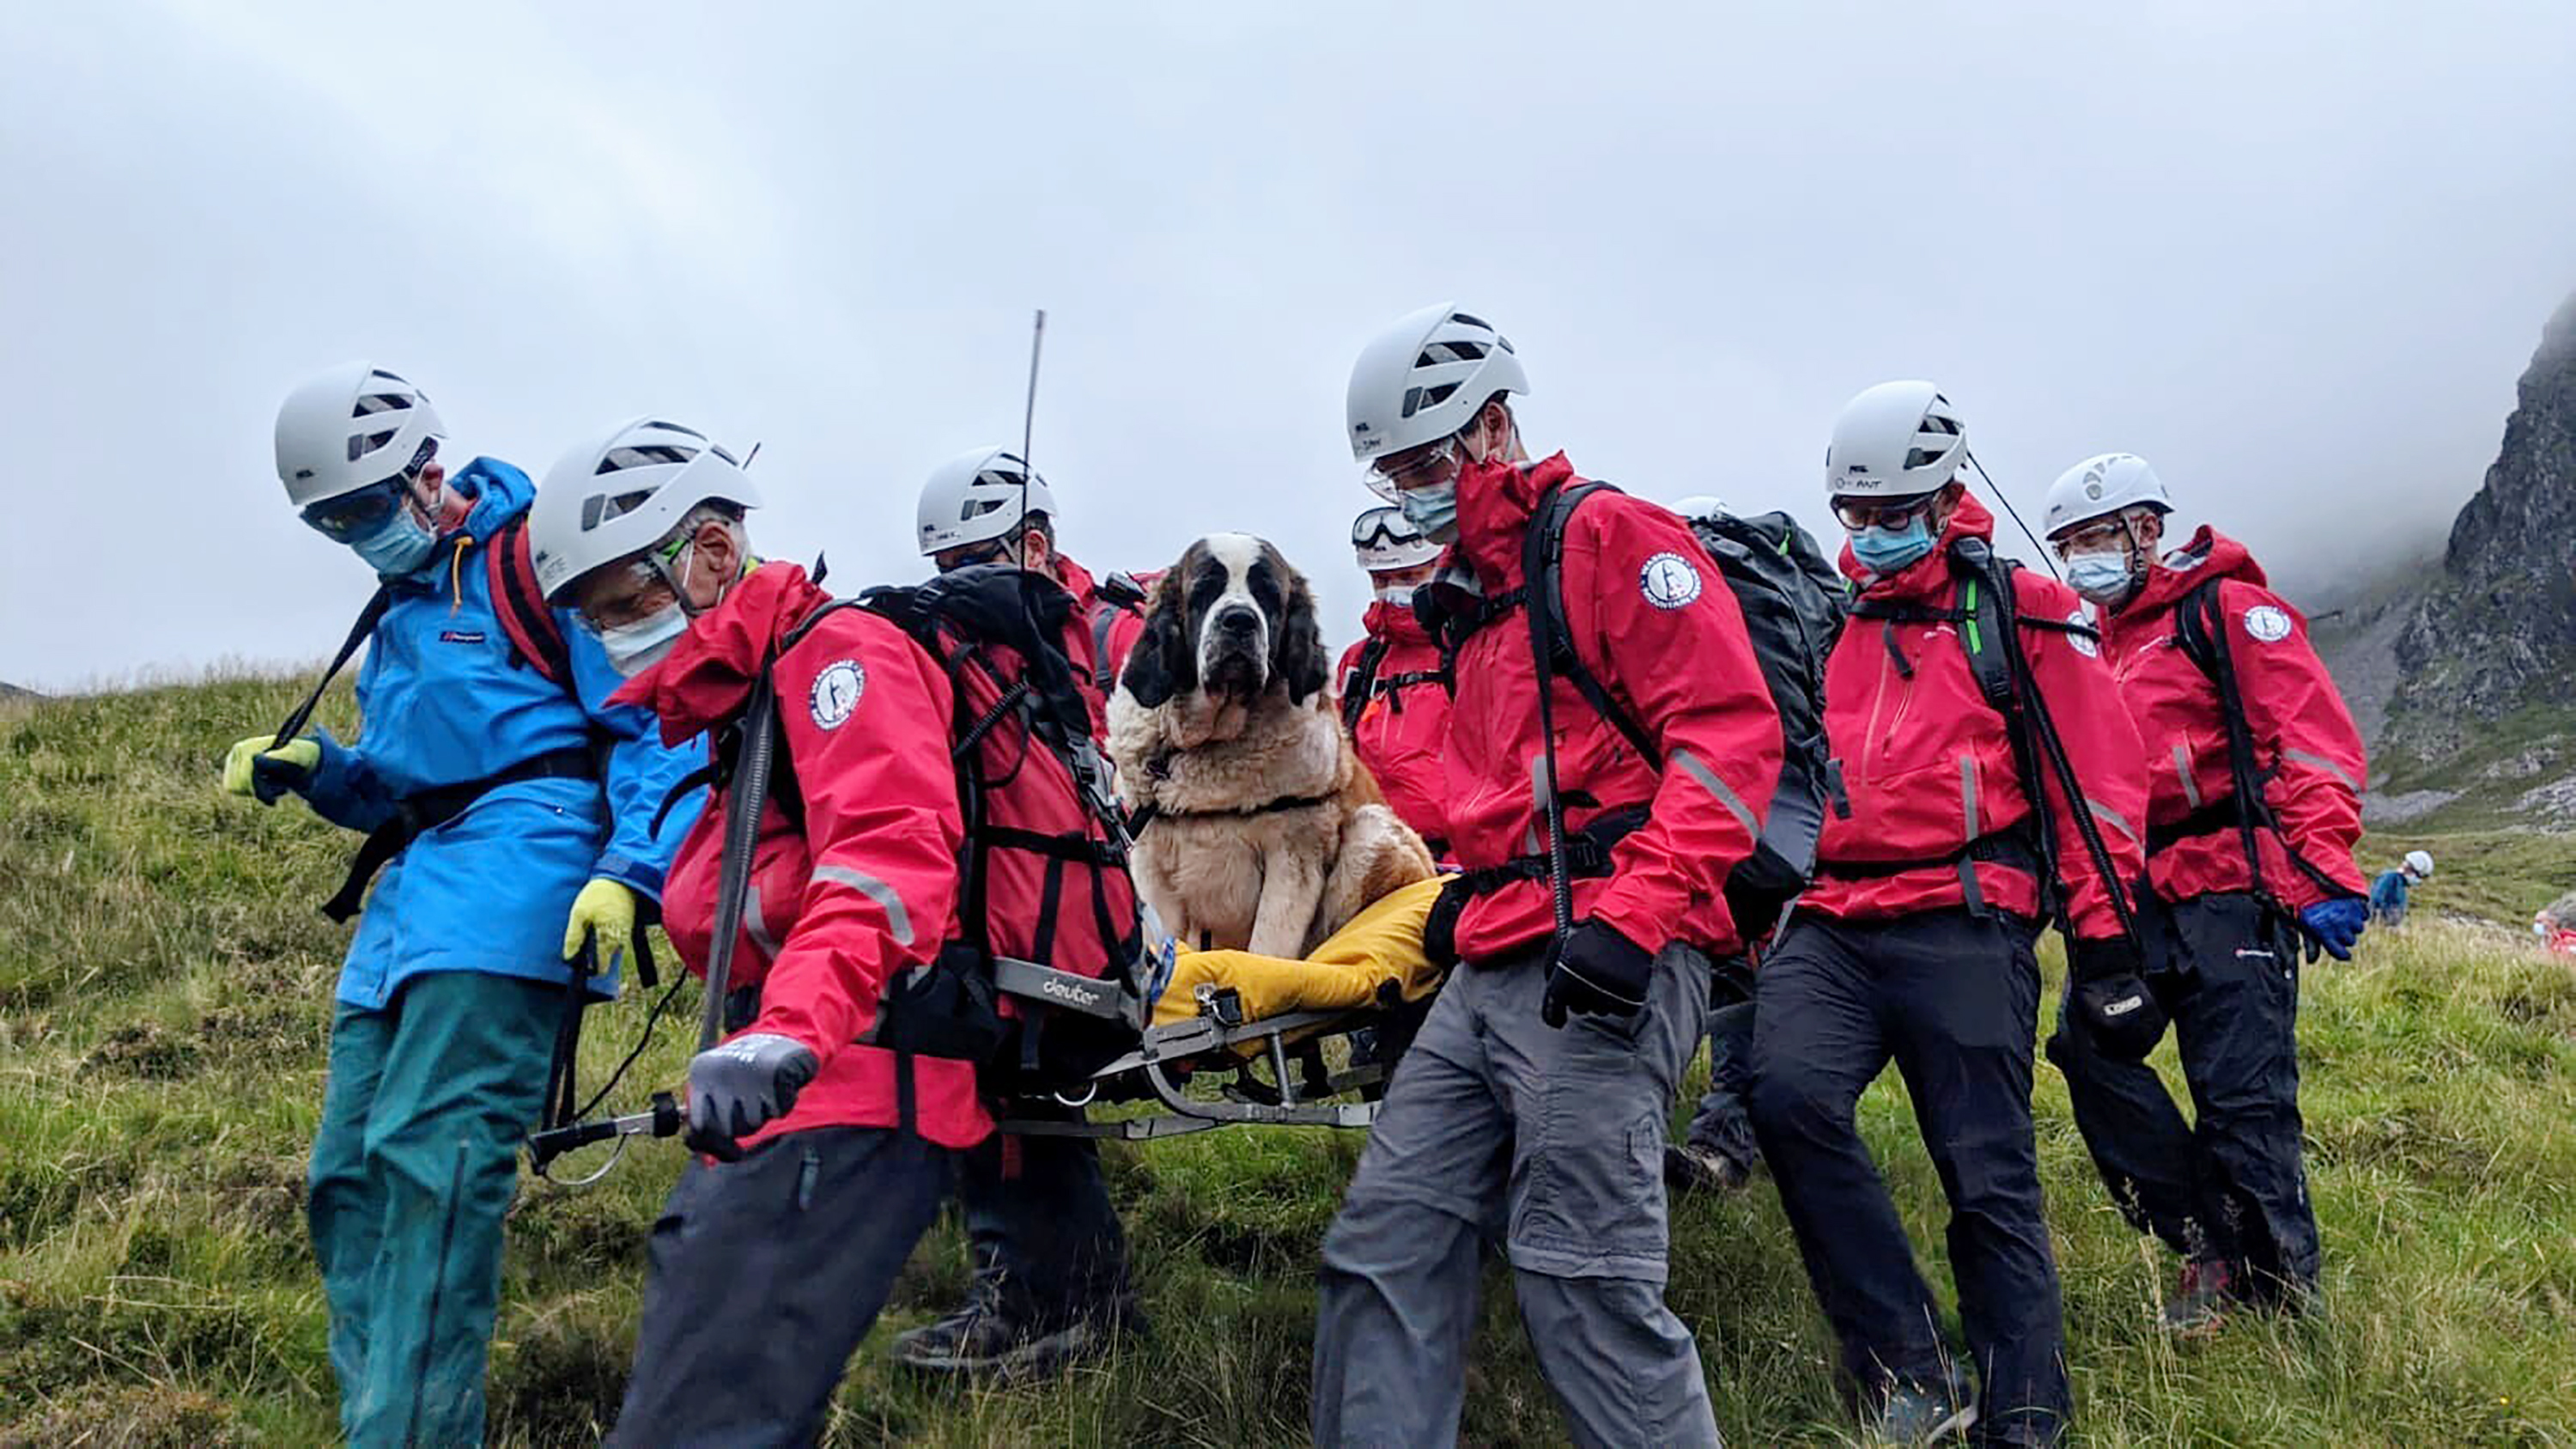 Sixteen volunteers from Wasdale mountain rescue team take turns to carry Daisy, a 121lb St Bernard dog, from England's highest peak on July 26, 2020.